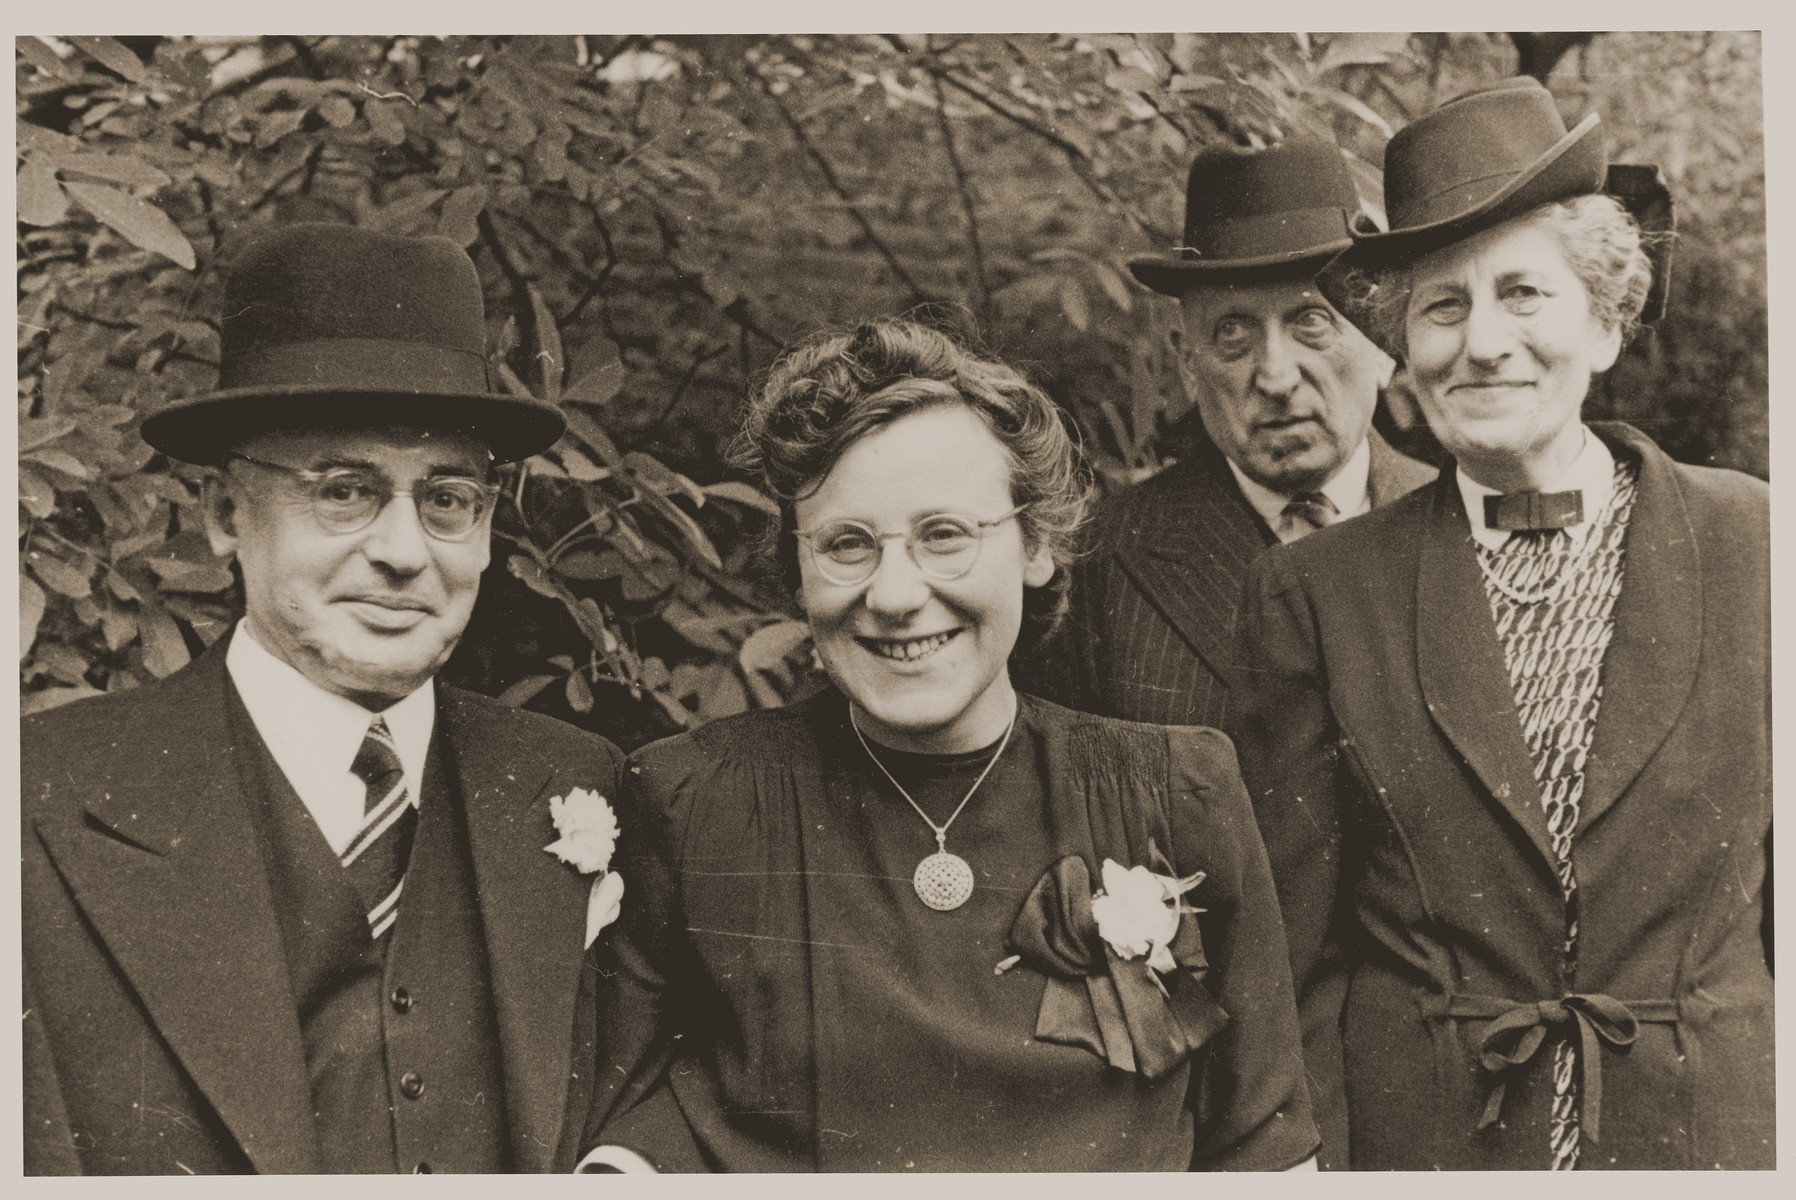 Guests at the wedding of Lore Gotthelf and Erwin Jacobowitz at the Buckland Crescent Synagogue in London.  Pictured from left to right are: Hugo and Emmy Marx, and Mr. and Mrs. Blum.